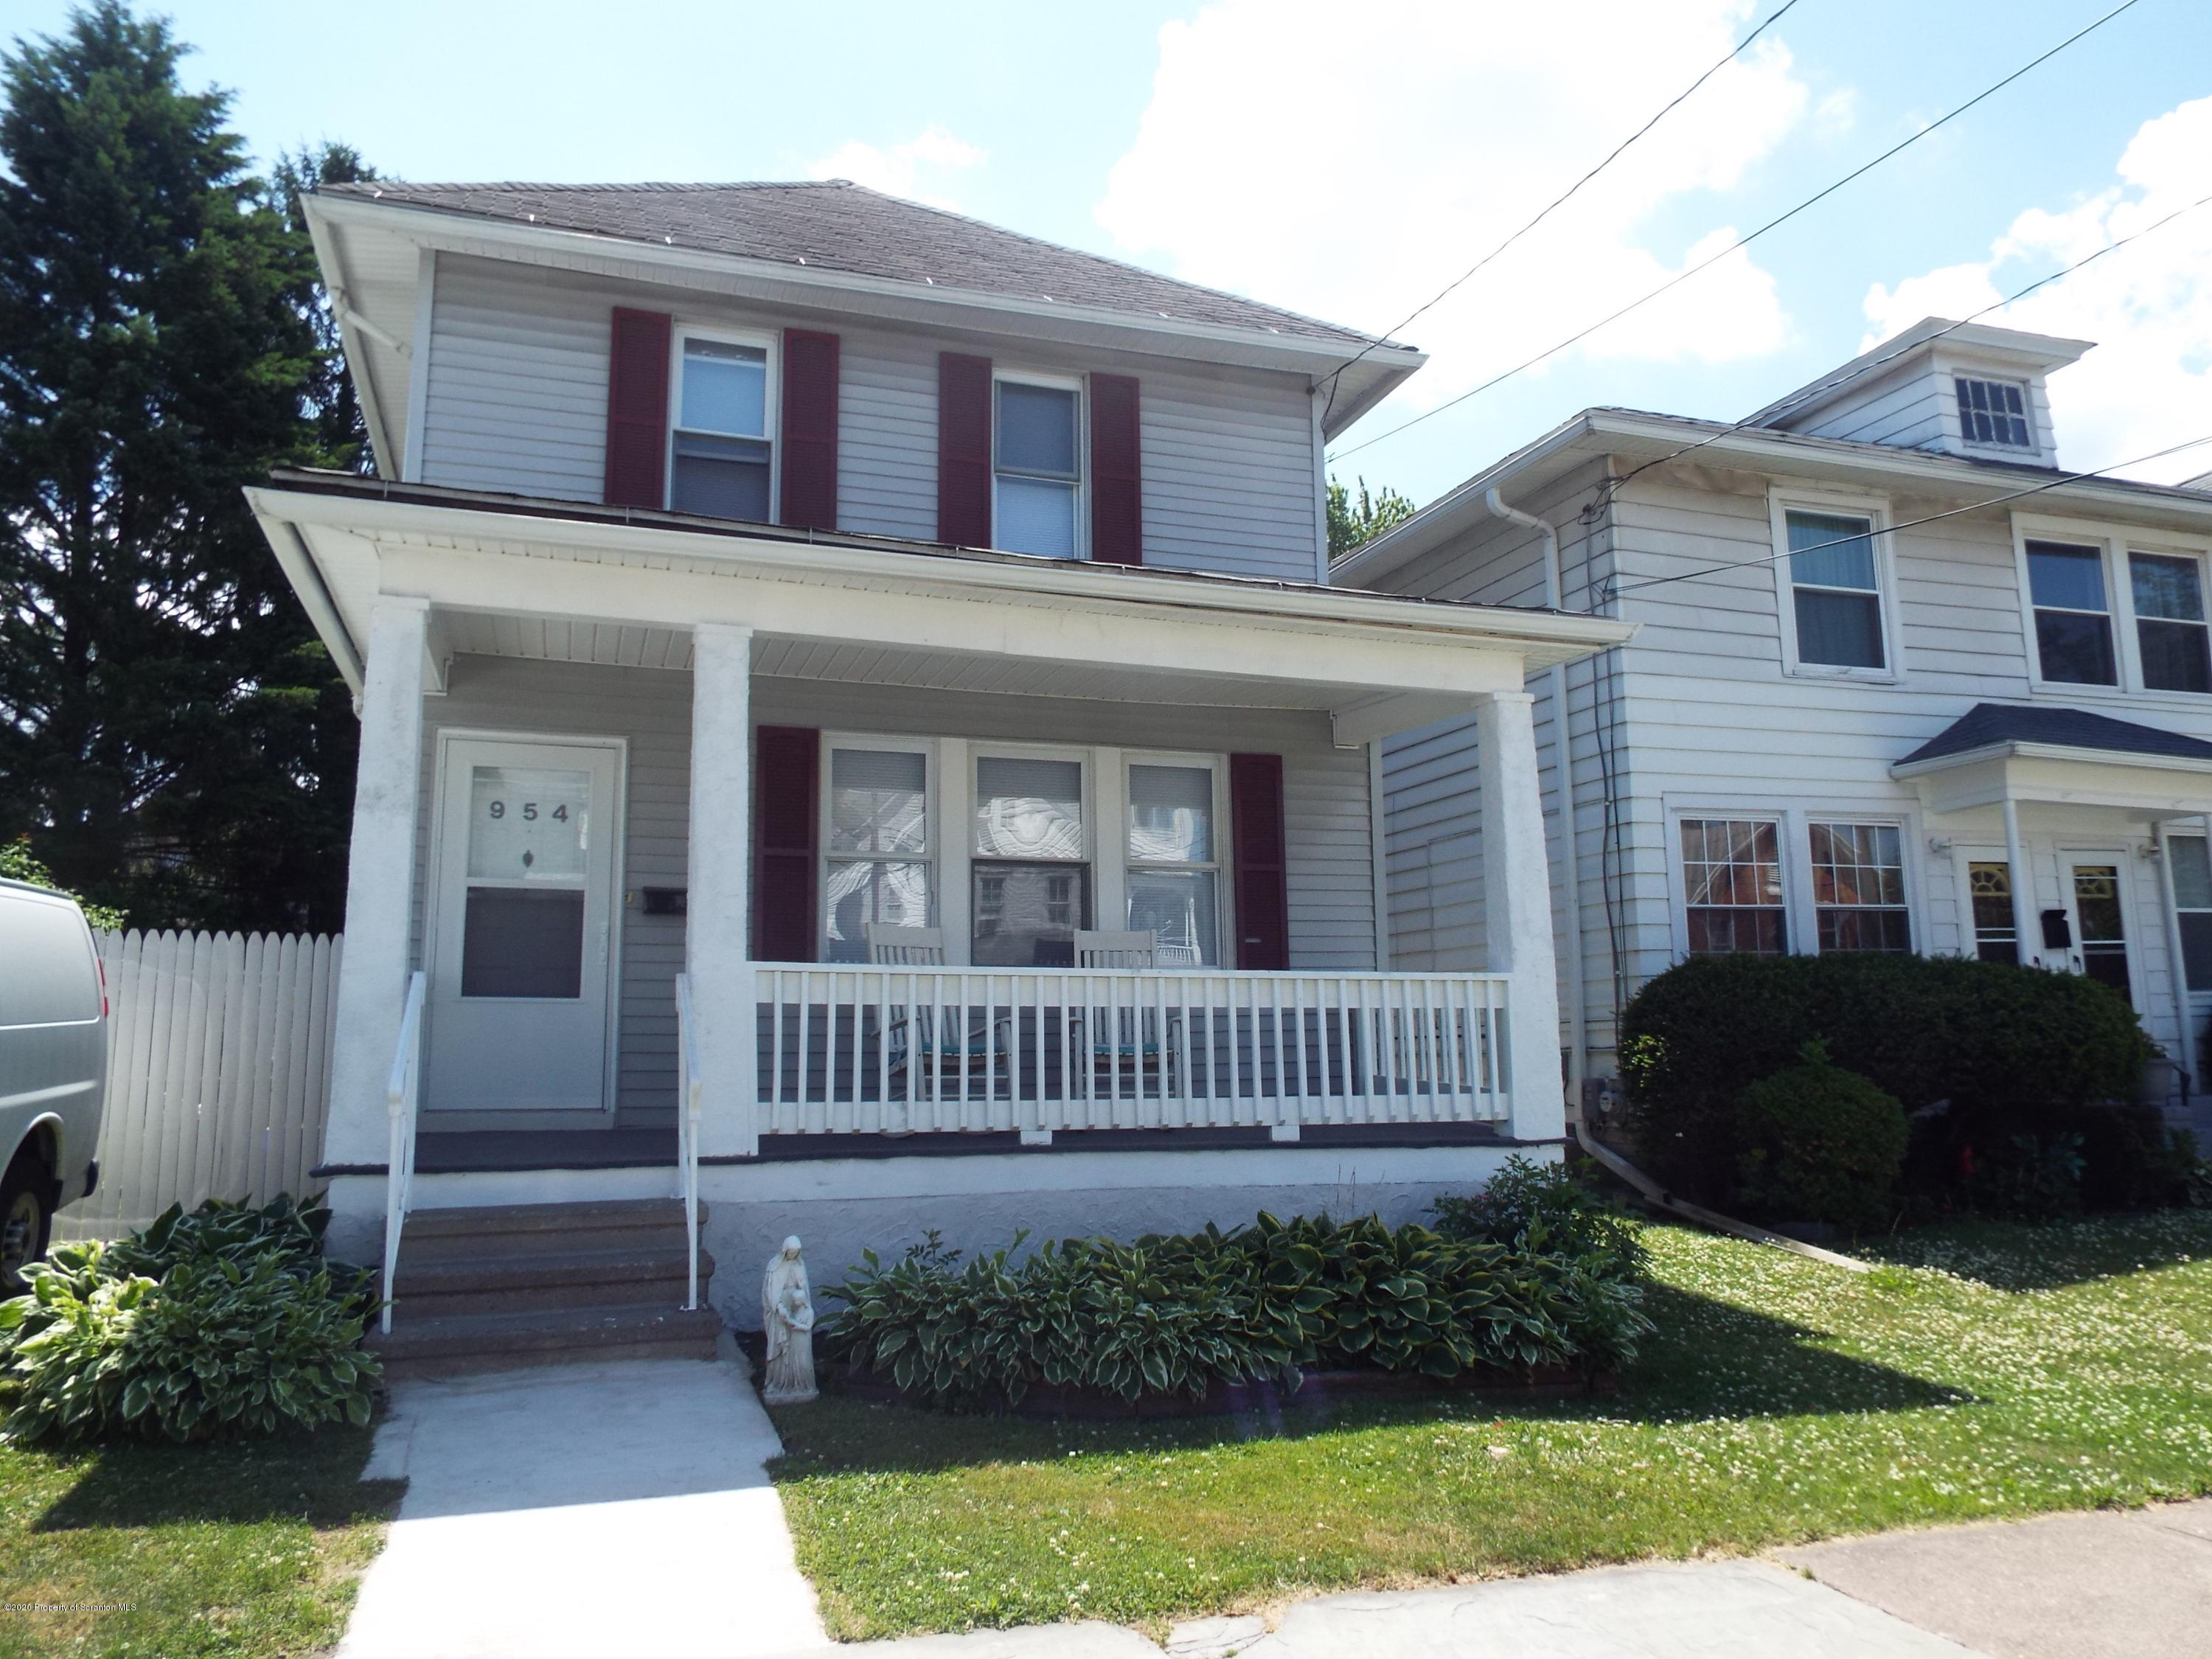 954 Irving Ave, Scranton, Pennsylvania 18510, 3 Bedrooms Bedrooms, 6 Rooms Rooms,1 BathroomBathrooms,Single Family,For Sale,Irving,20-2241